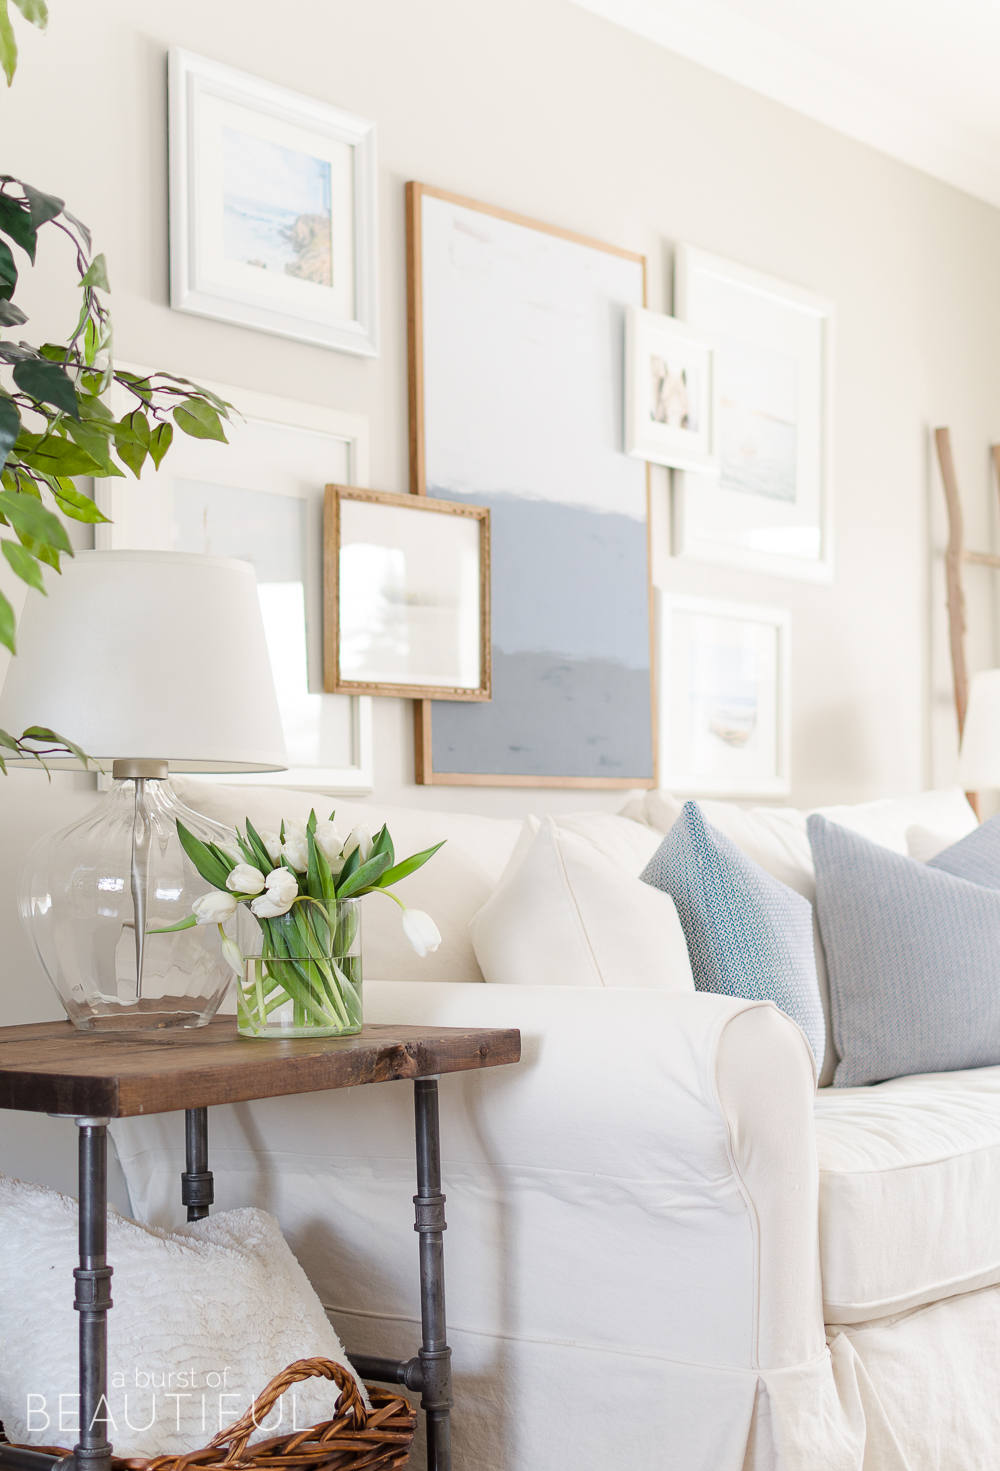 Spring Home Tour   Our Living Room - A modern farmhouse living room looks fresh and cheerful for spring with a subtle blue and white color palette and layered coastal gallery wall.